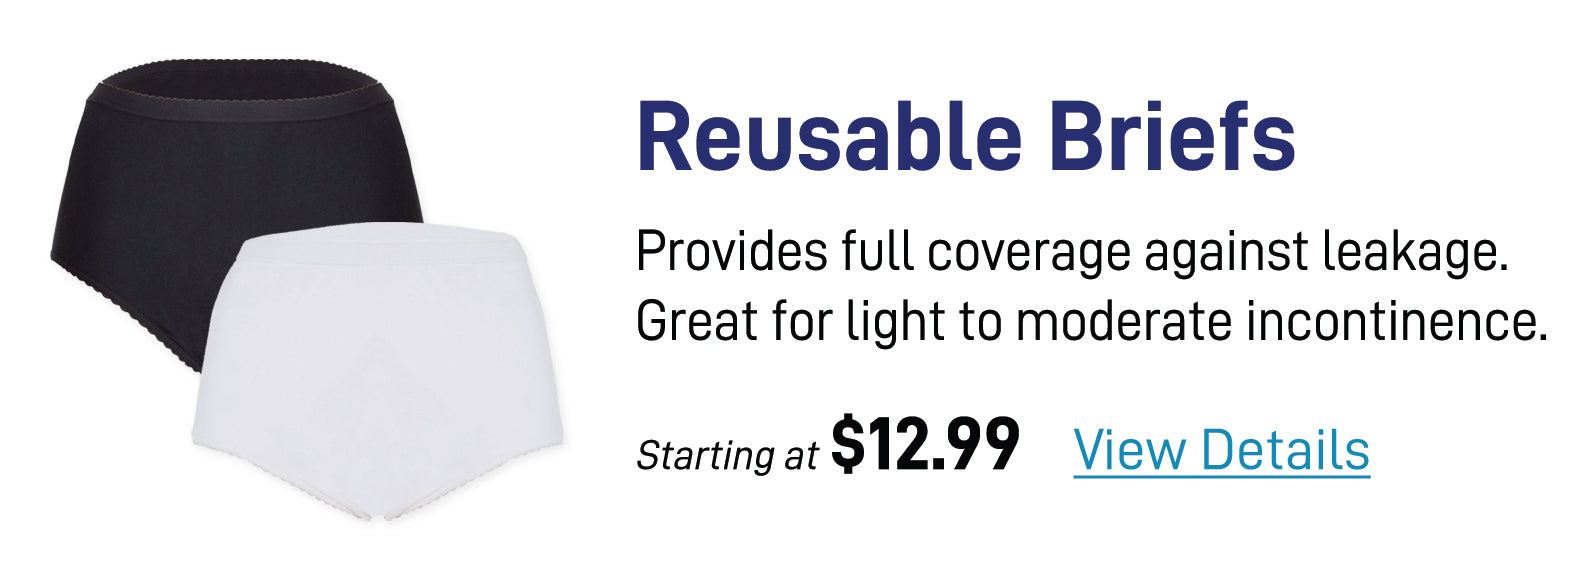 Reusable Briefs - Provides full coverage against leakage. Great for light to moderate incontinence.